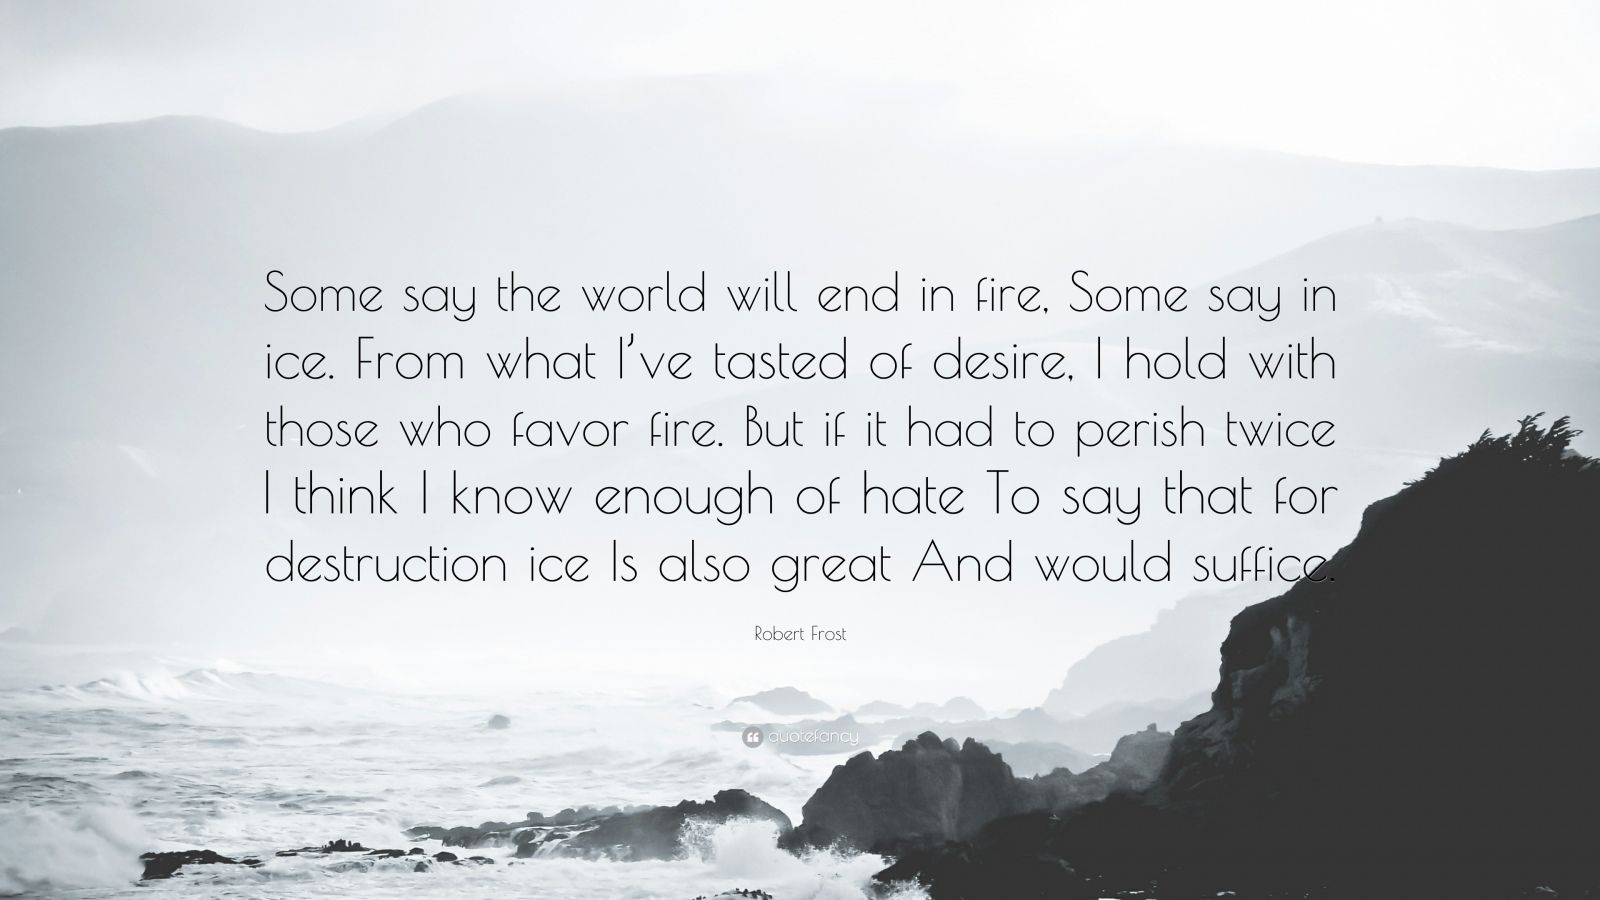 """Robert Frost Quote: """"Some say the world will end in fire, Some say in ice. From what I've tasted of desire, I hold with those who favor fire. But if it had to perish twice I think I know enough of hate To say that for destruction ice Is also great And would suffice."""""""